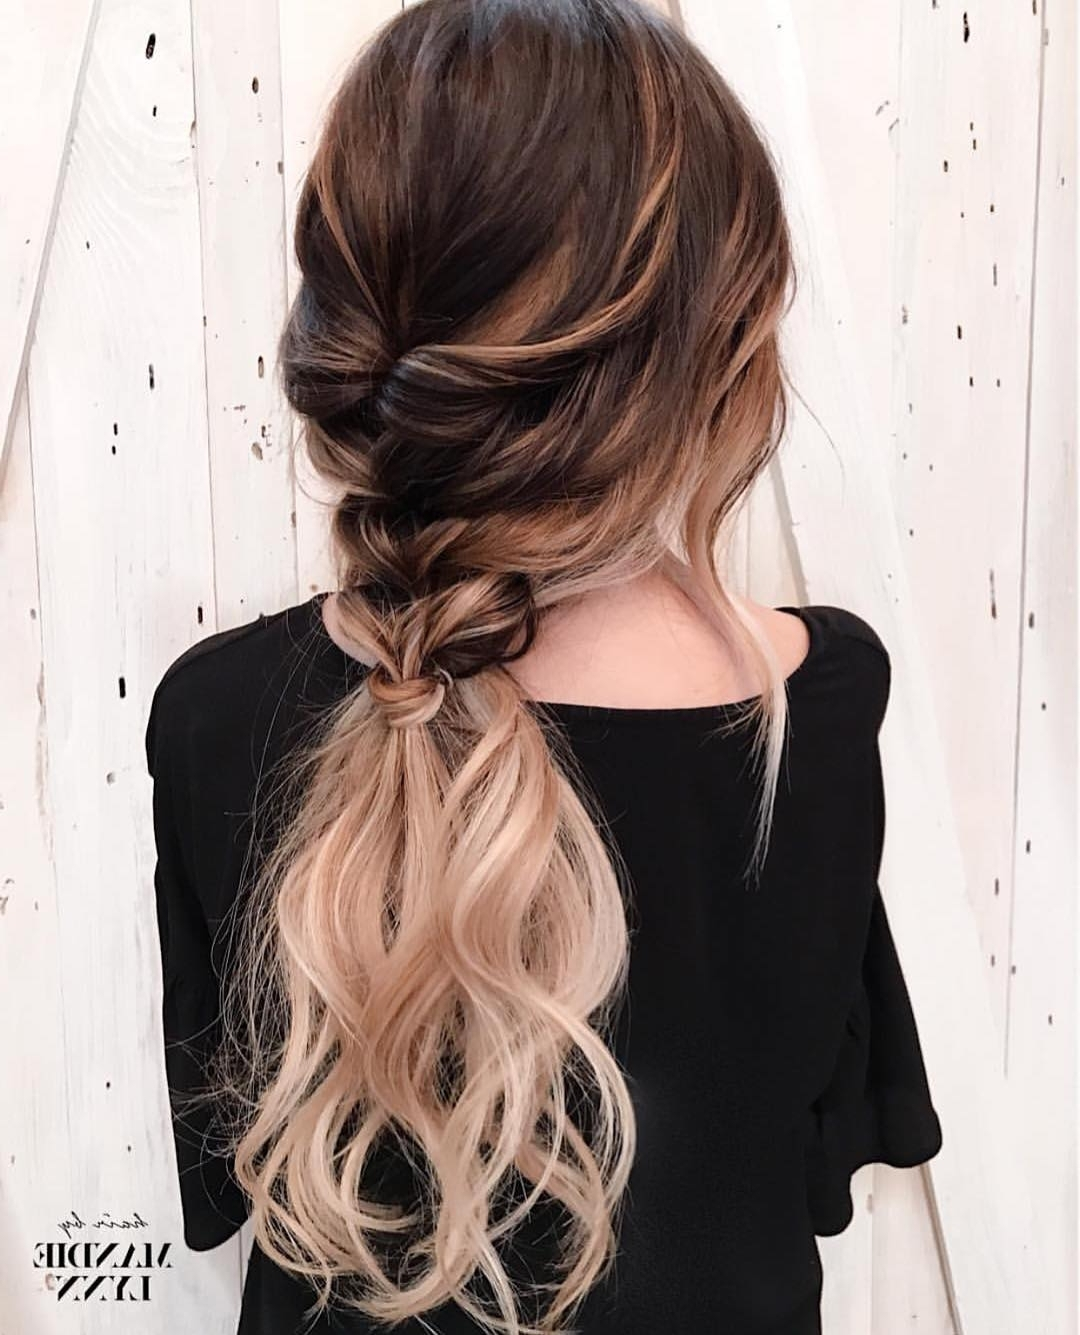 10 Trendiest Ponytail Hairstyles For Long Hair 2018 – Easy Ponytails Intended For Most Up To Date Ponytail Hairstyles With Wild Wavy Ombre (View 1 of 20)